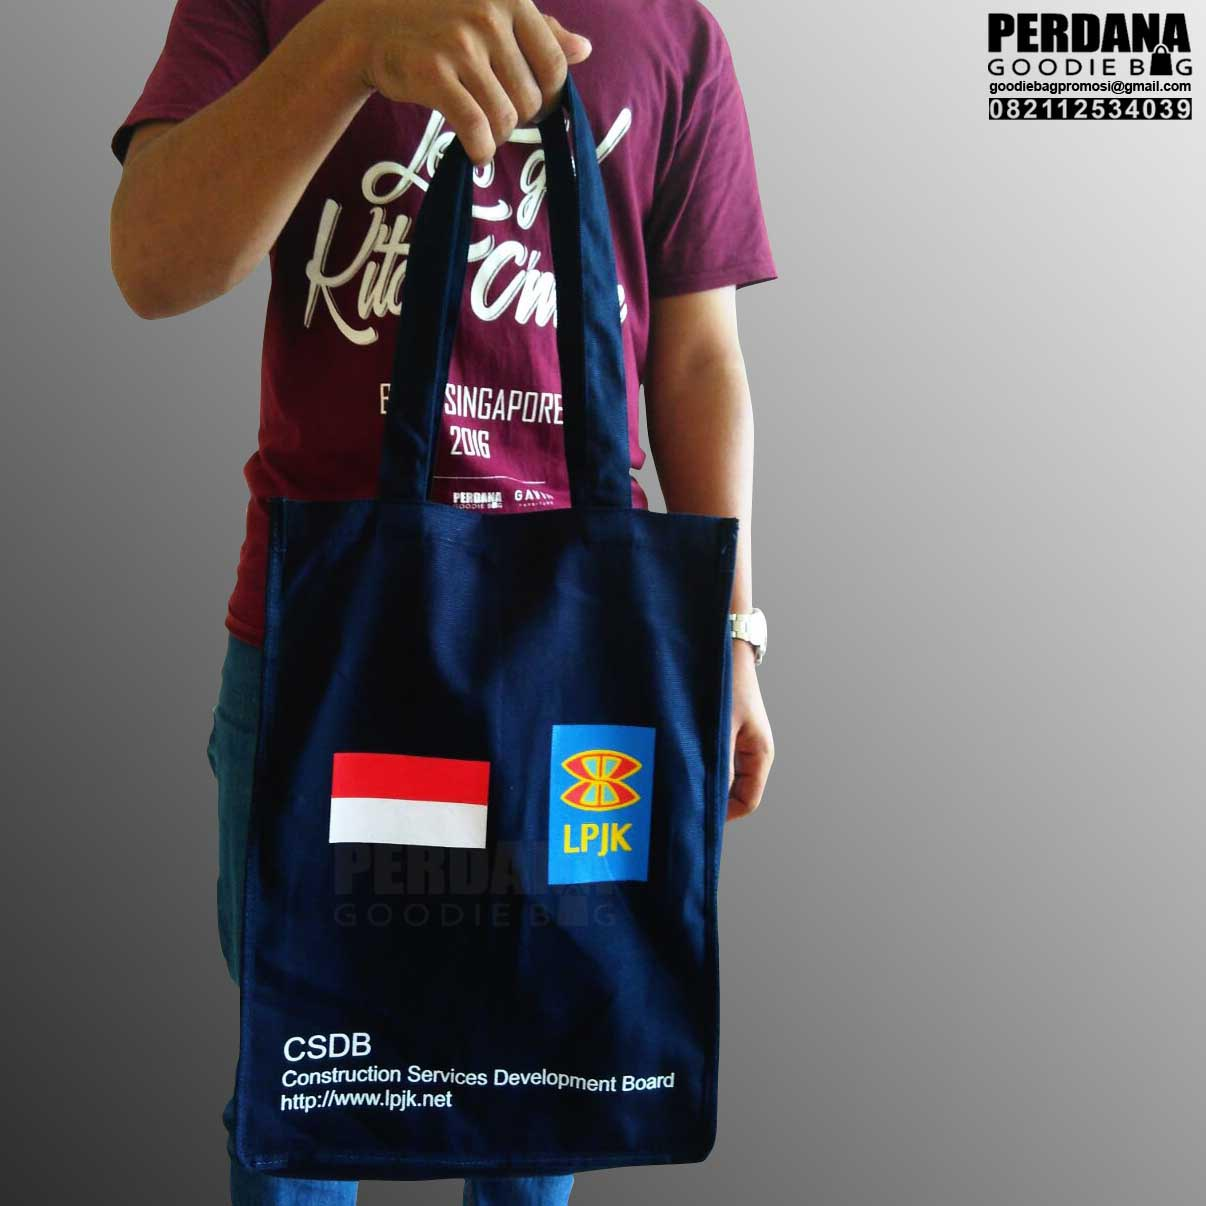 Q2838 tas kanvas LPJK by Perdana Goodiebag